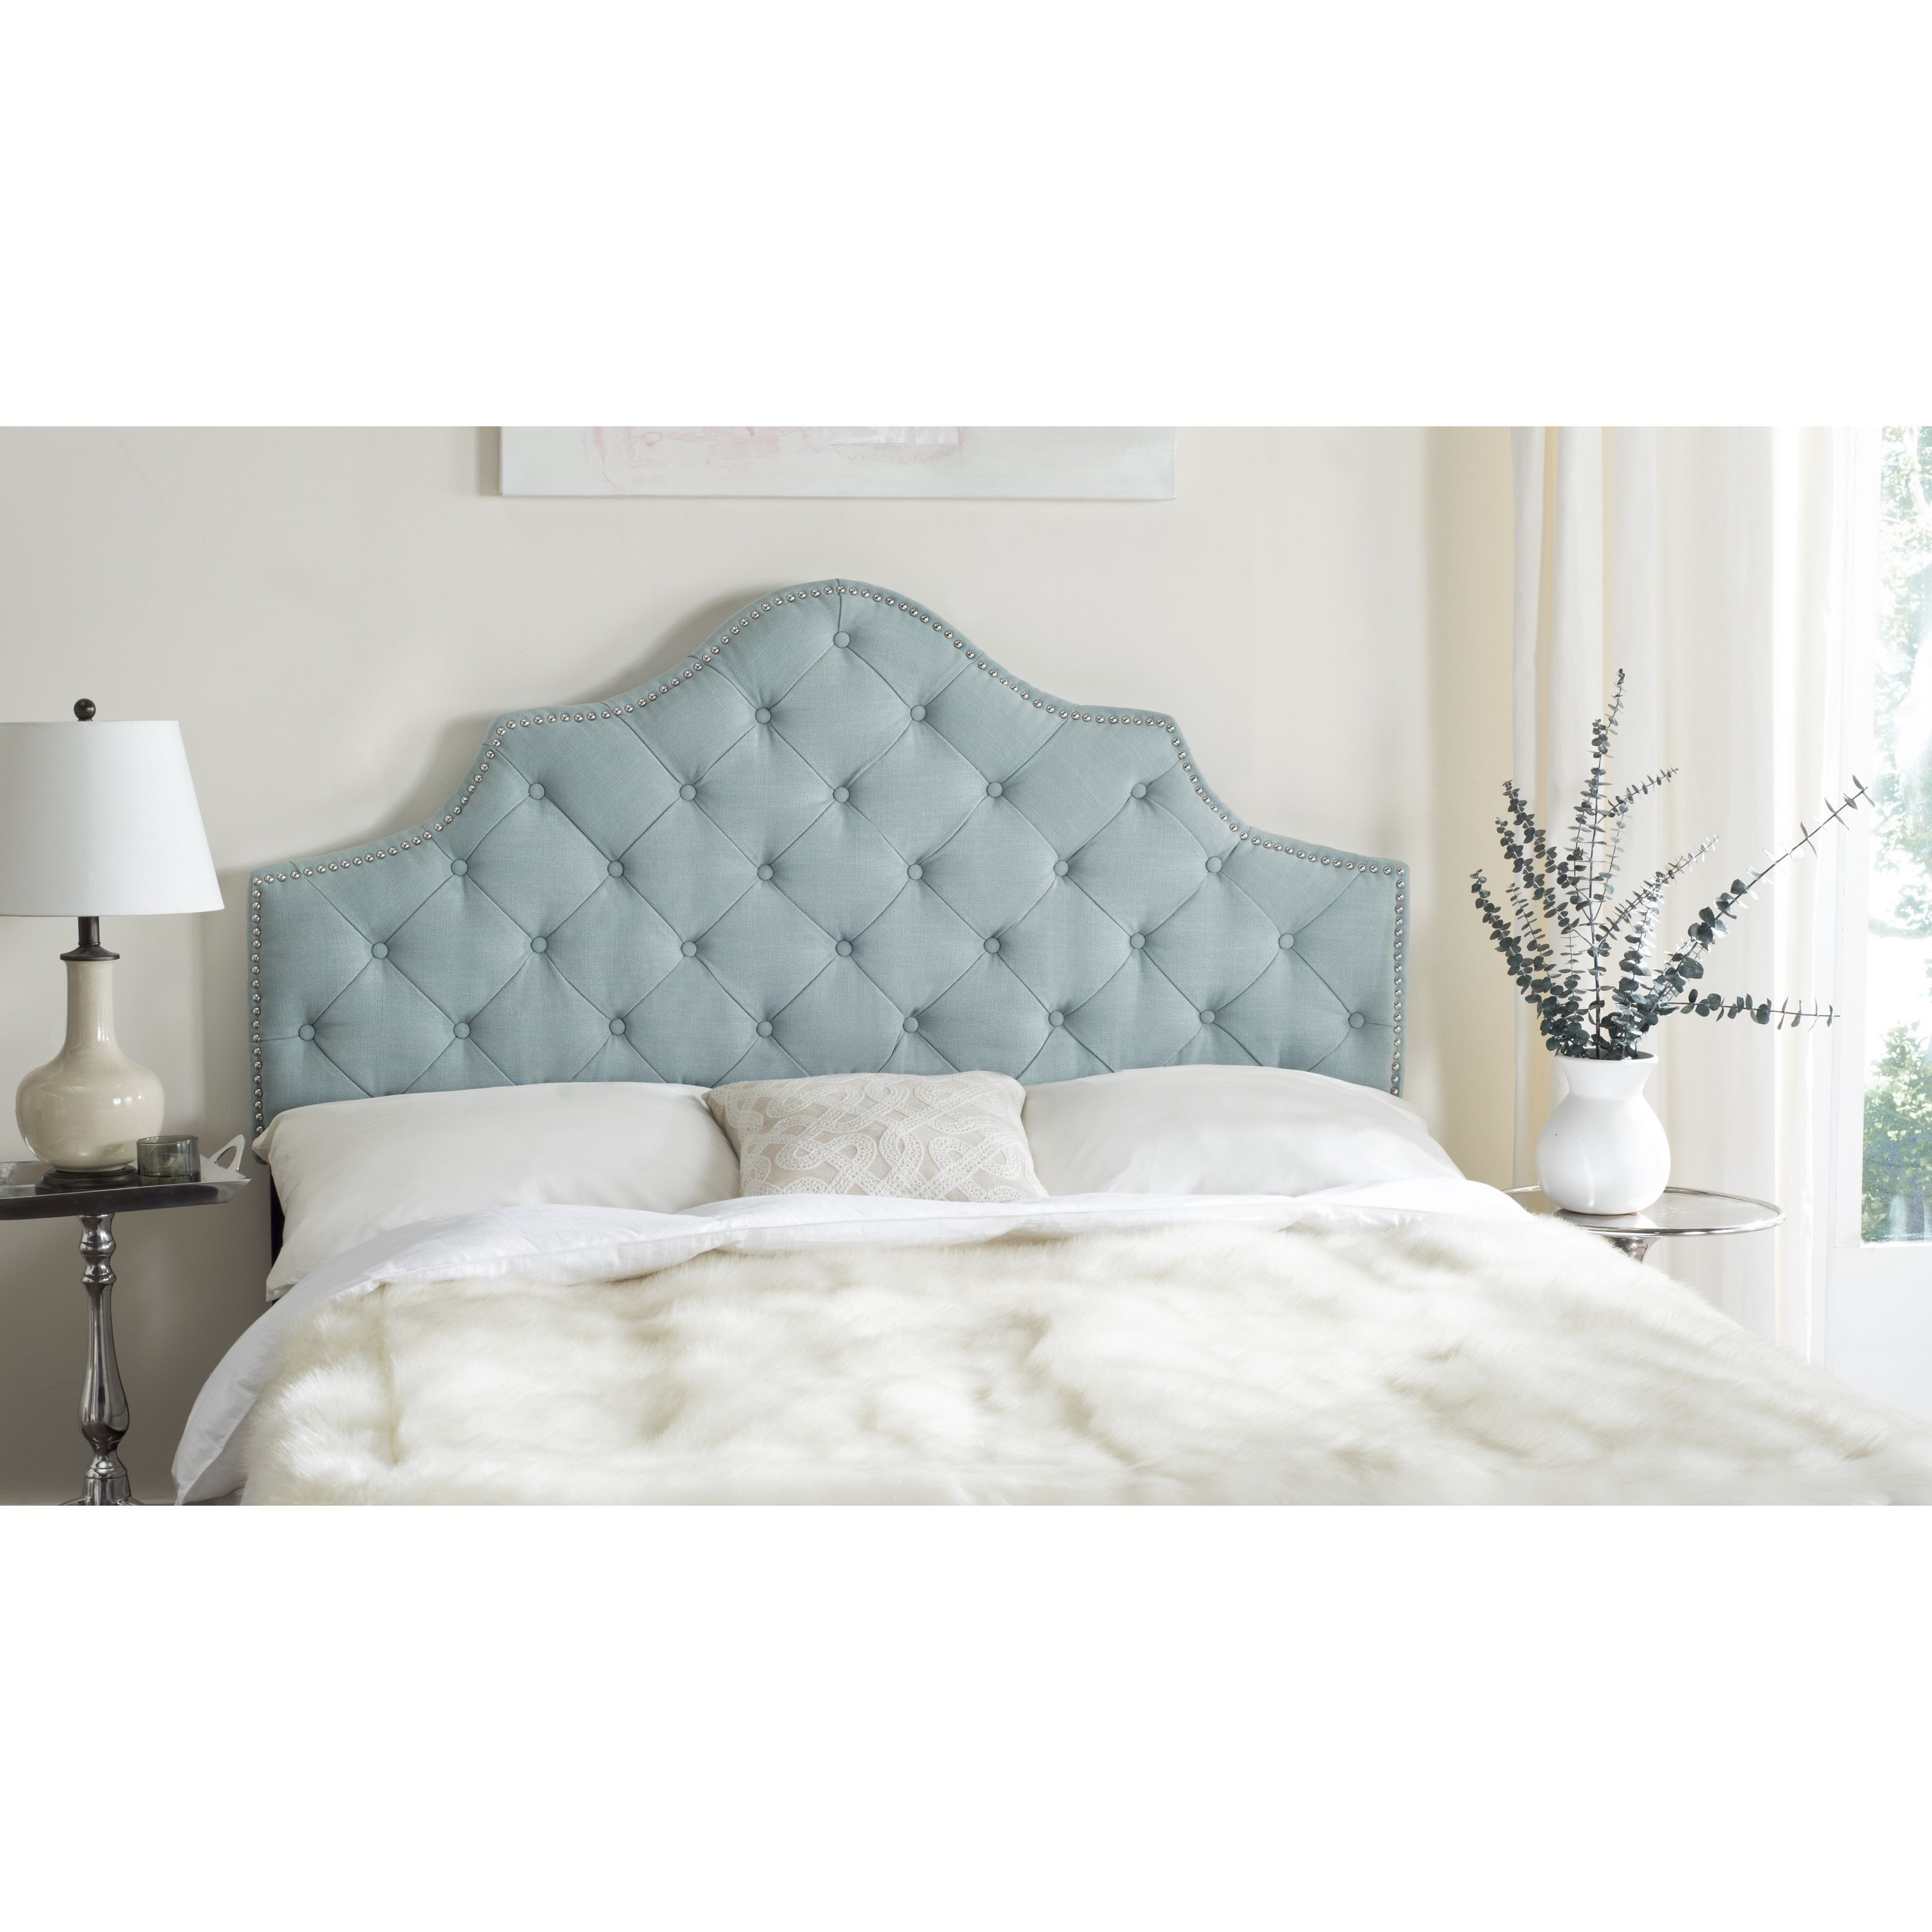 queen sorrentos headboard charcoal bistro types of grey tufted upholstered blue padded leather wingback white to brown velvet how headboards head custom gray home make fabric size full